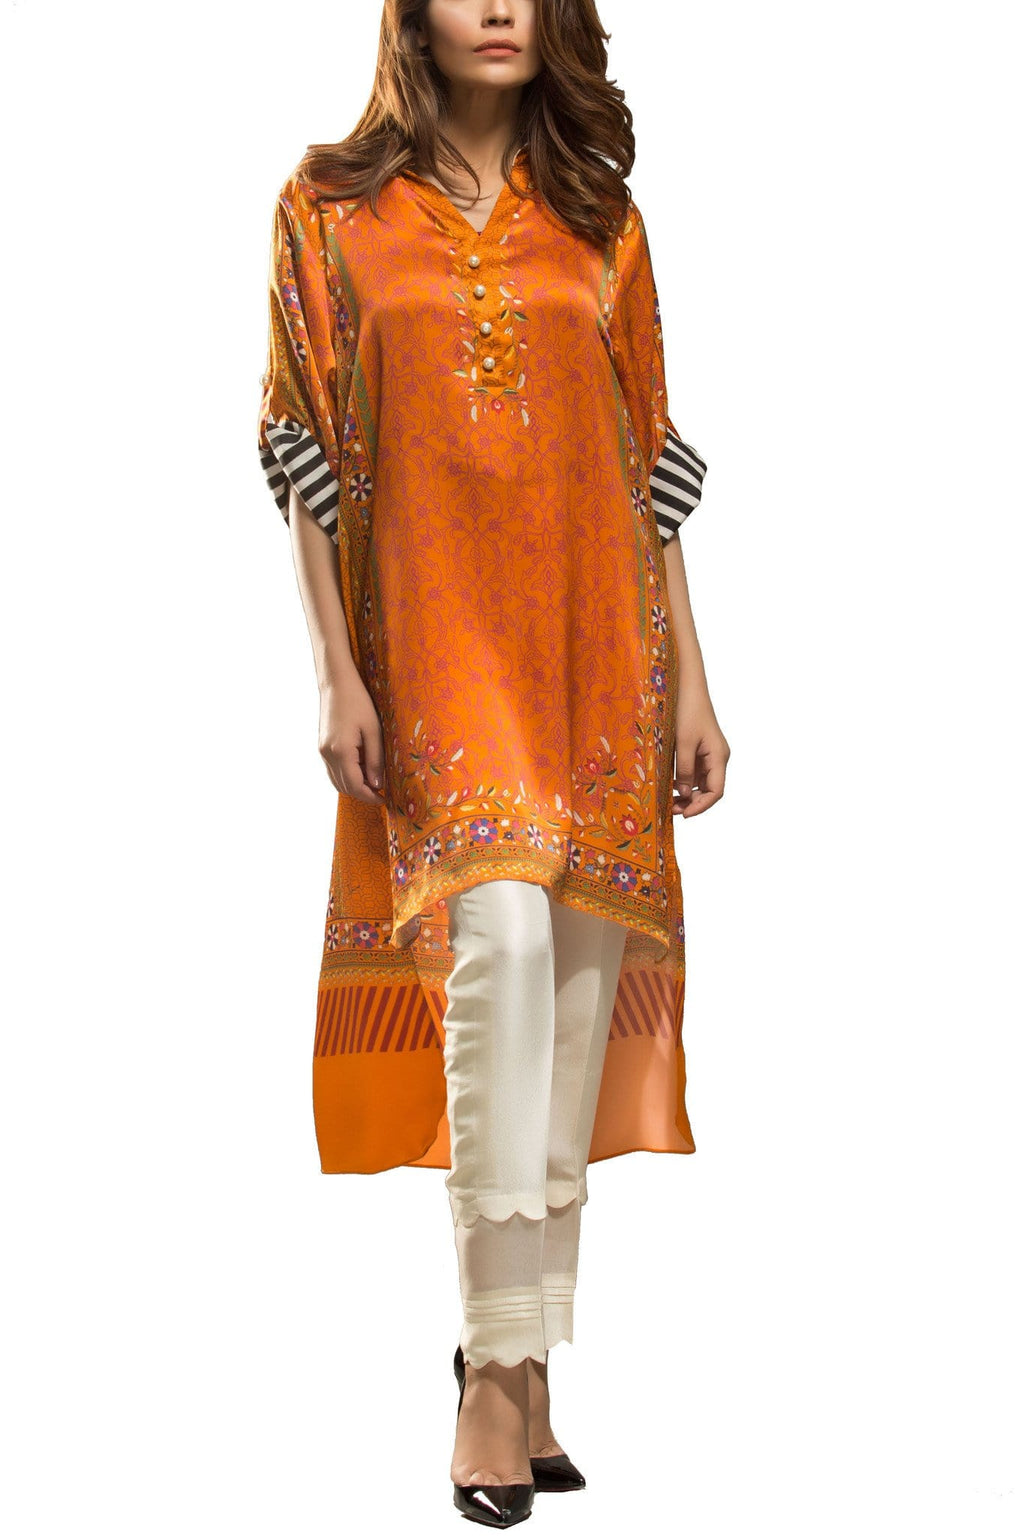 Sania Maskatiya - Digitally Printed Charmeuse Shirt